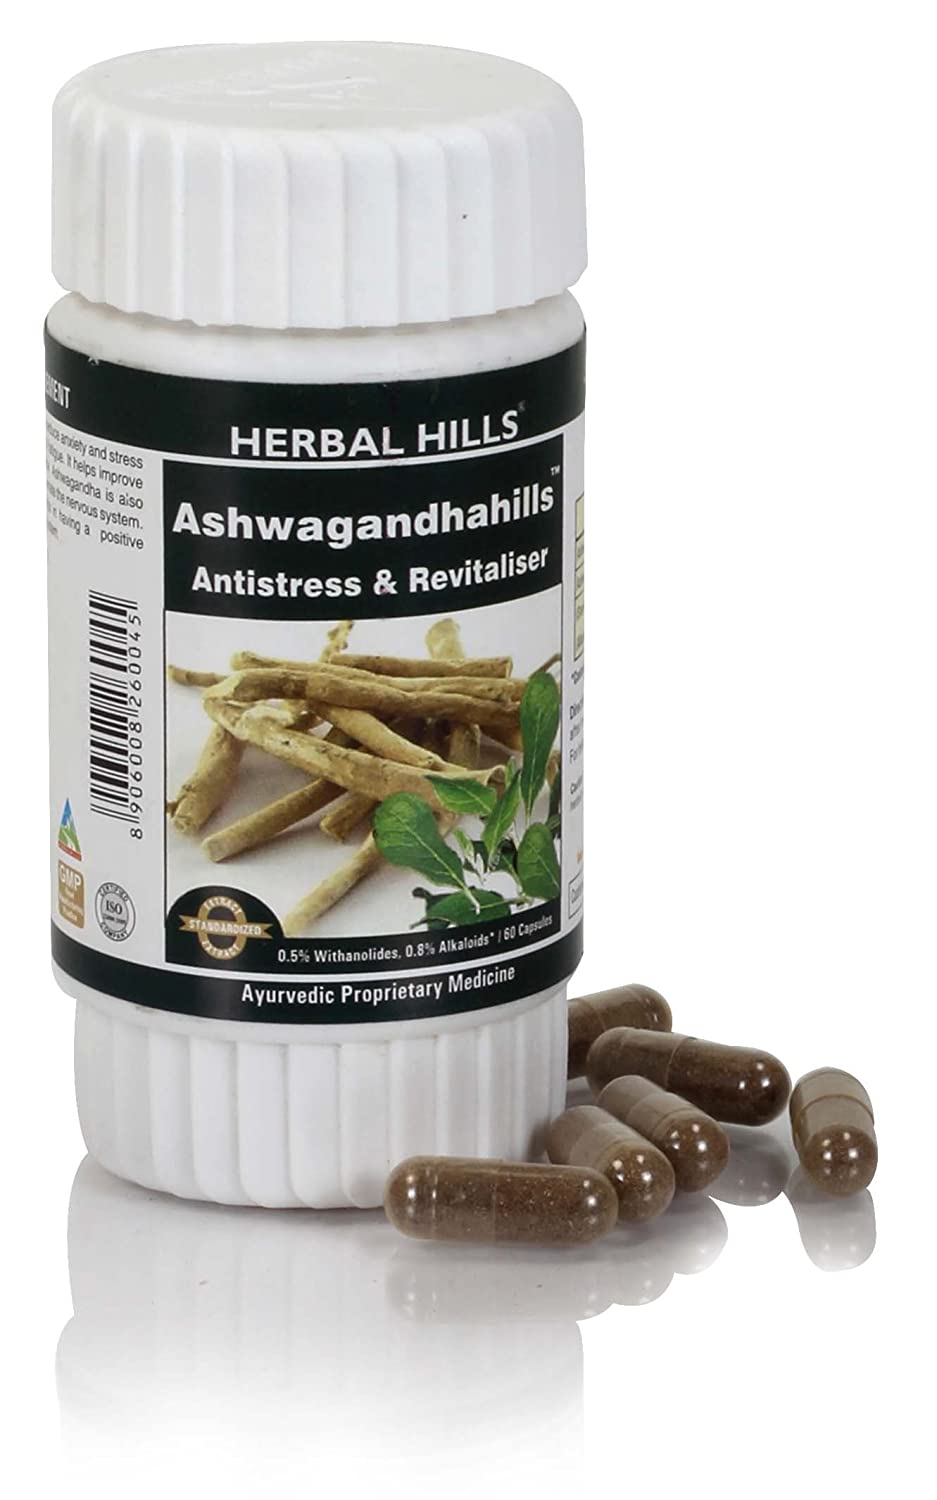 Cheapest amazon herbs - Buy Herbal Hills Ashwagandha 60 Capsules Online At Low Prices In India Amazon In